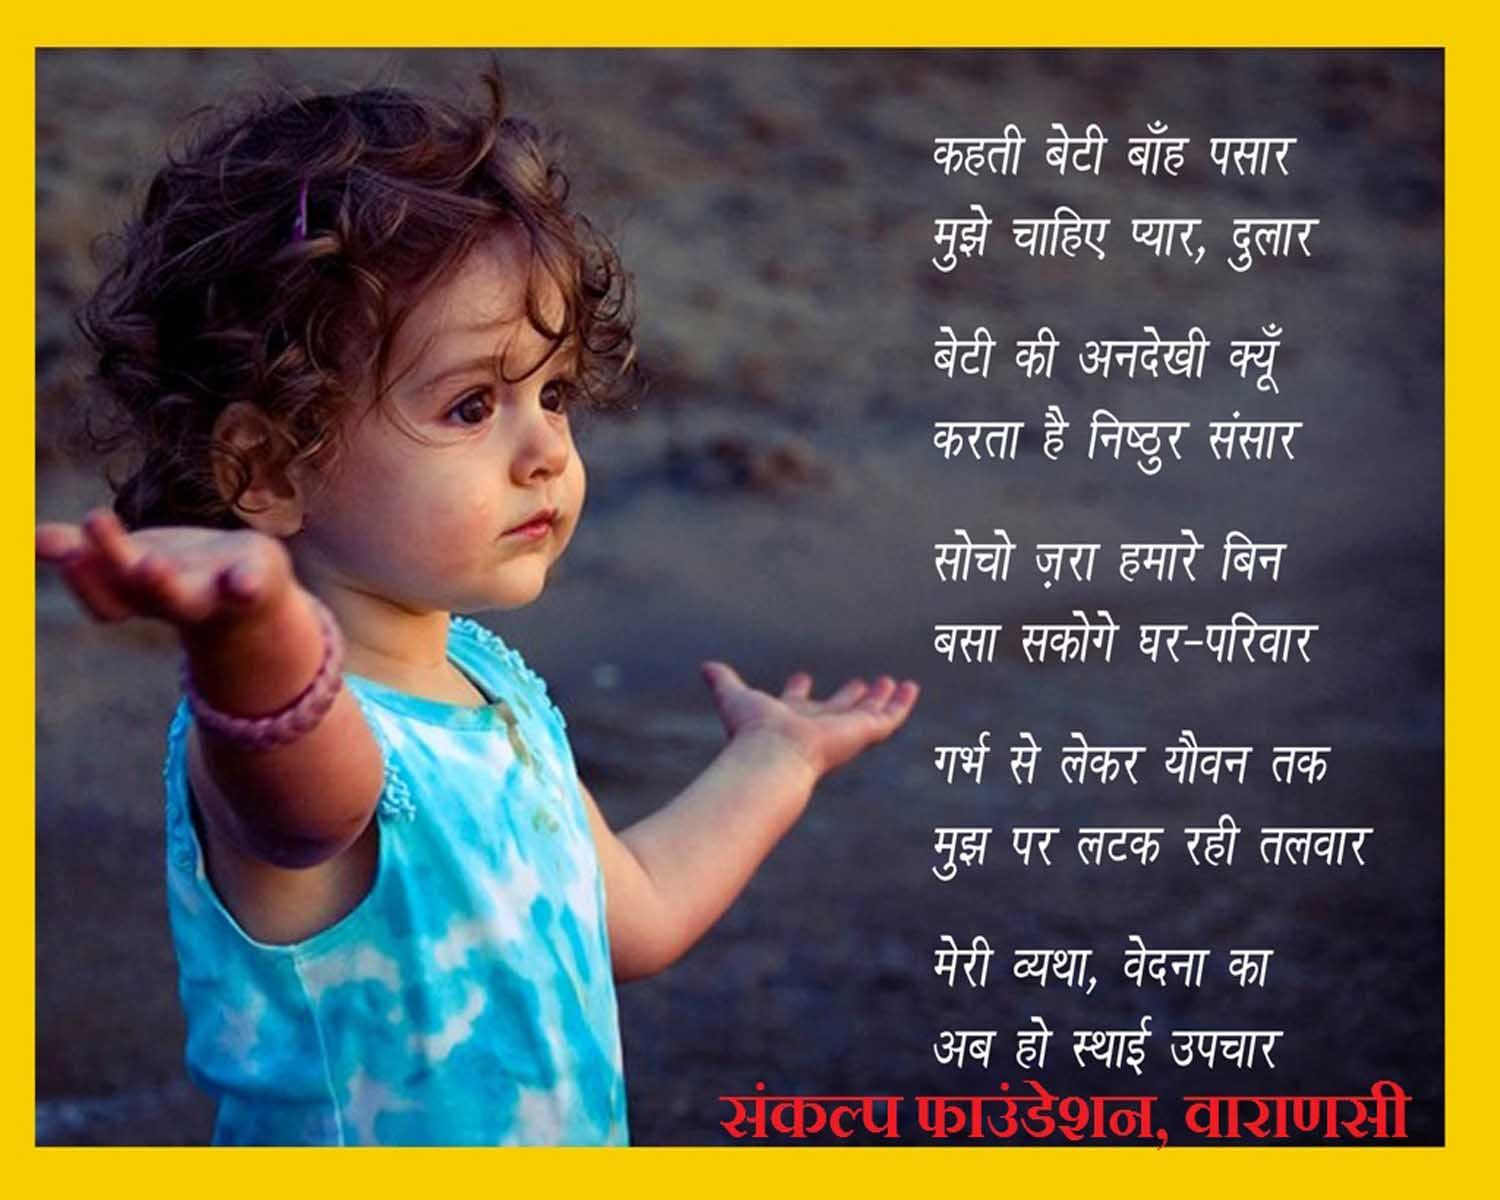 Save The Girl Child Social Message Hindi Quotes Quotes Reading